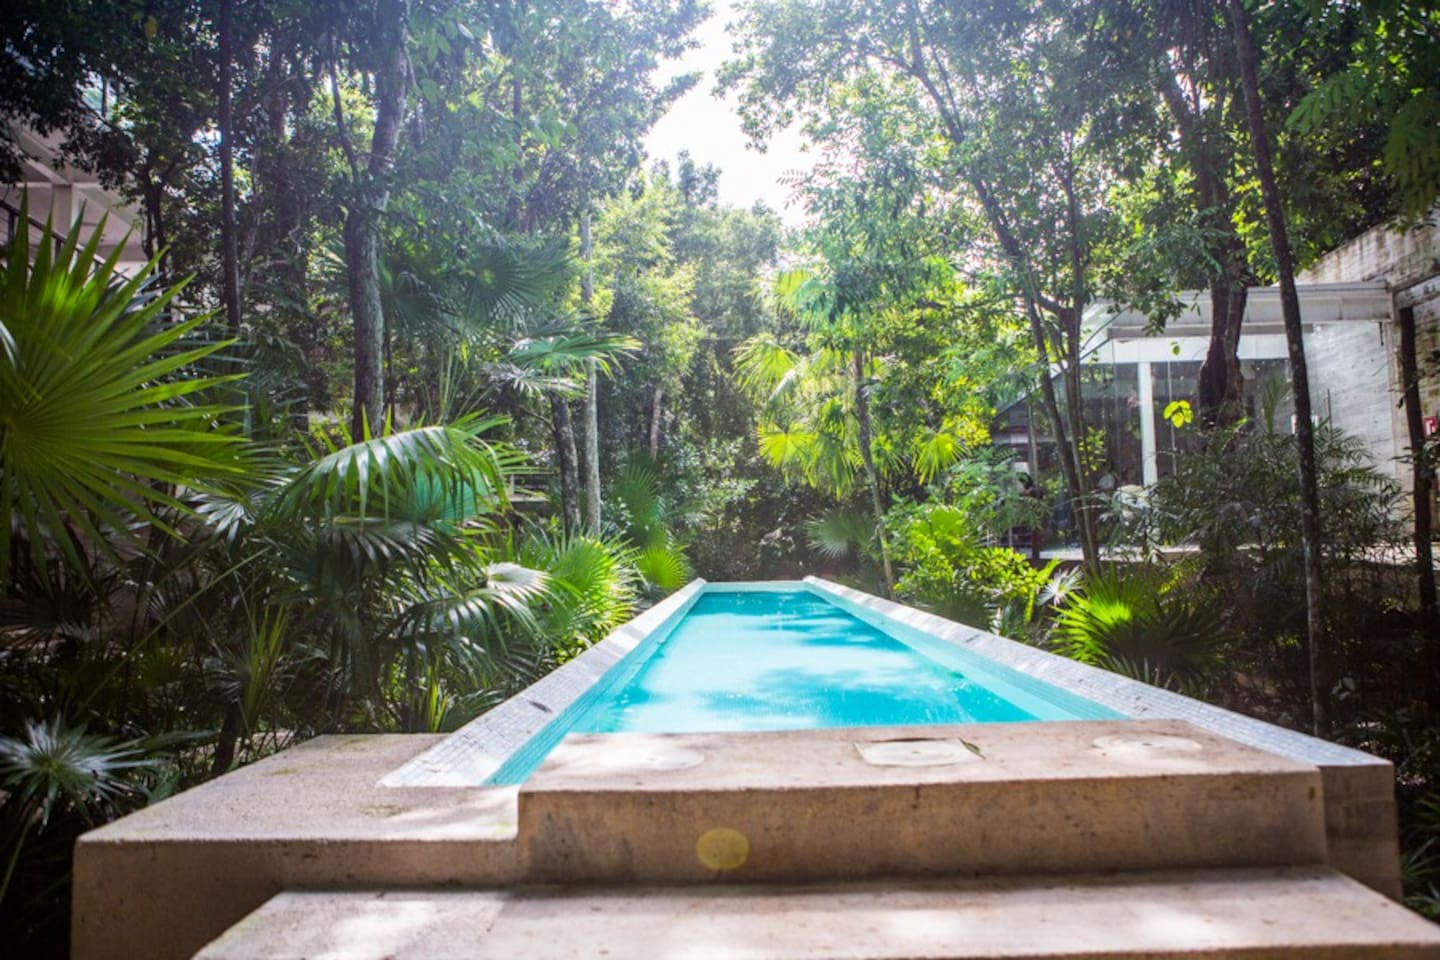 Lap pool at the TAO Wellness Center, beautifully settled in the jungle.